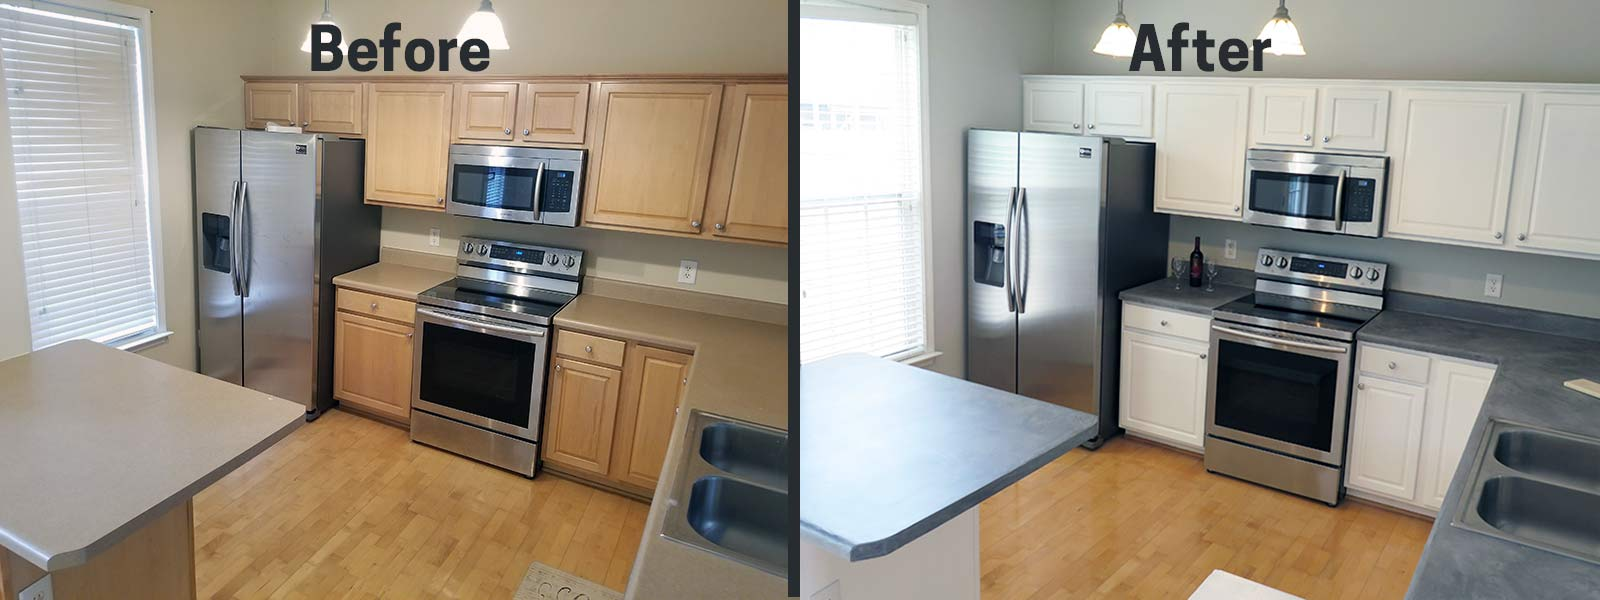 concrete countertop paint before after